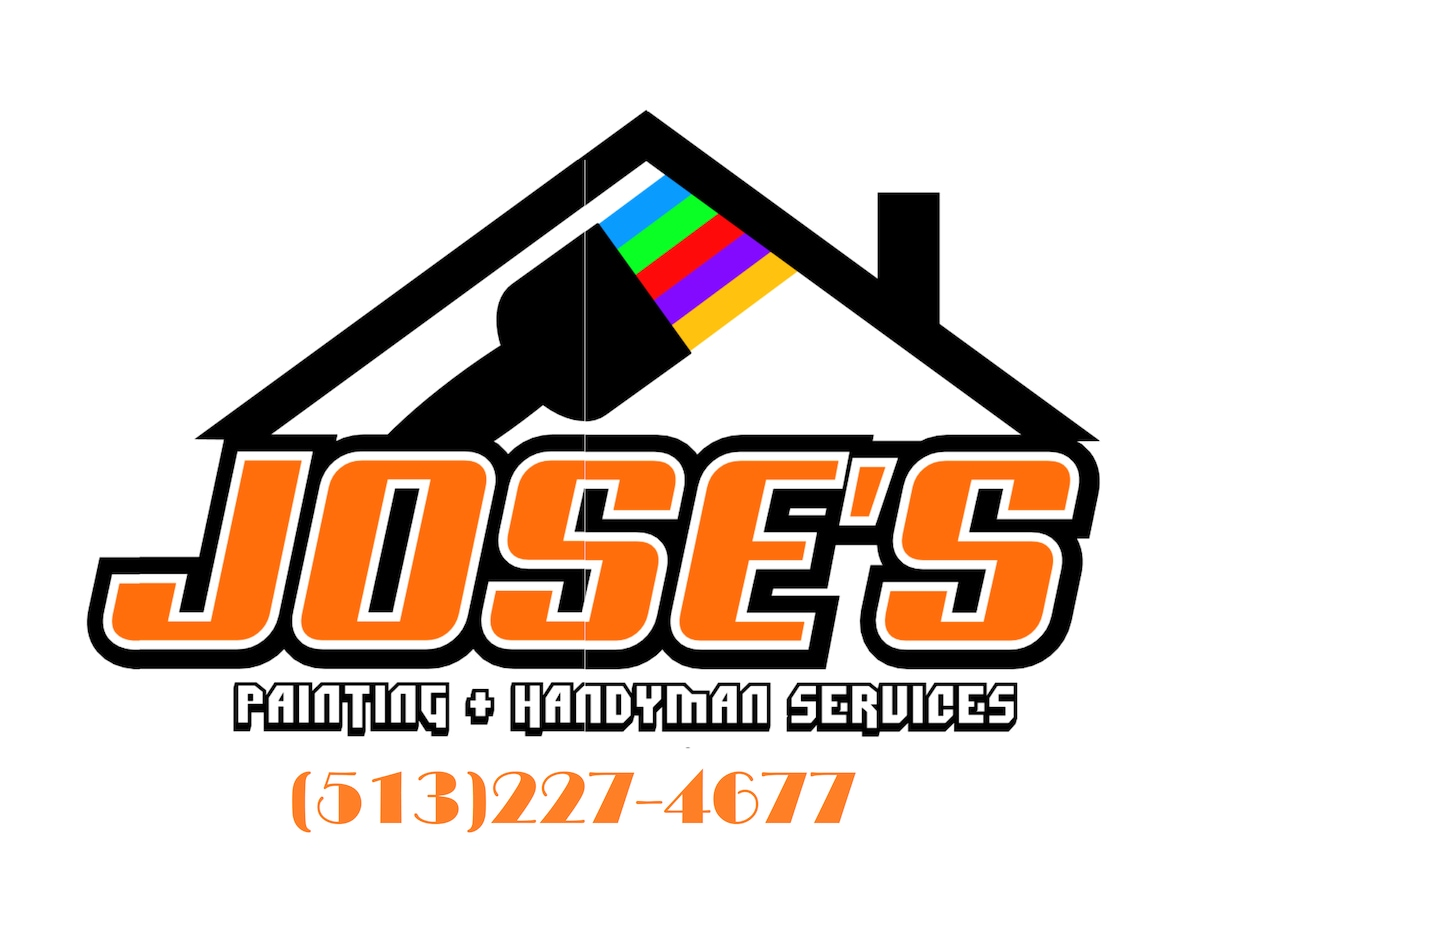 Jose's Painting & Handyman Services